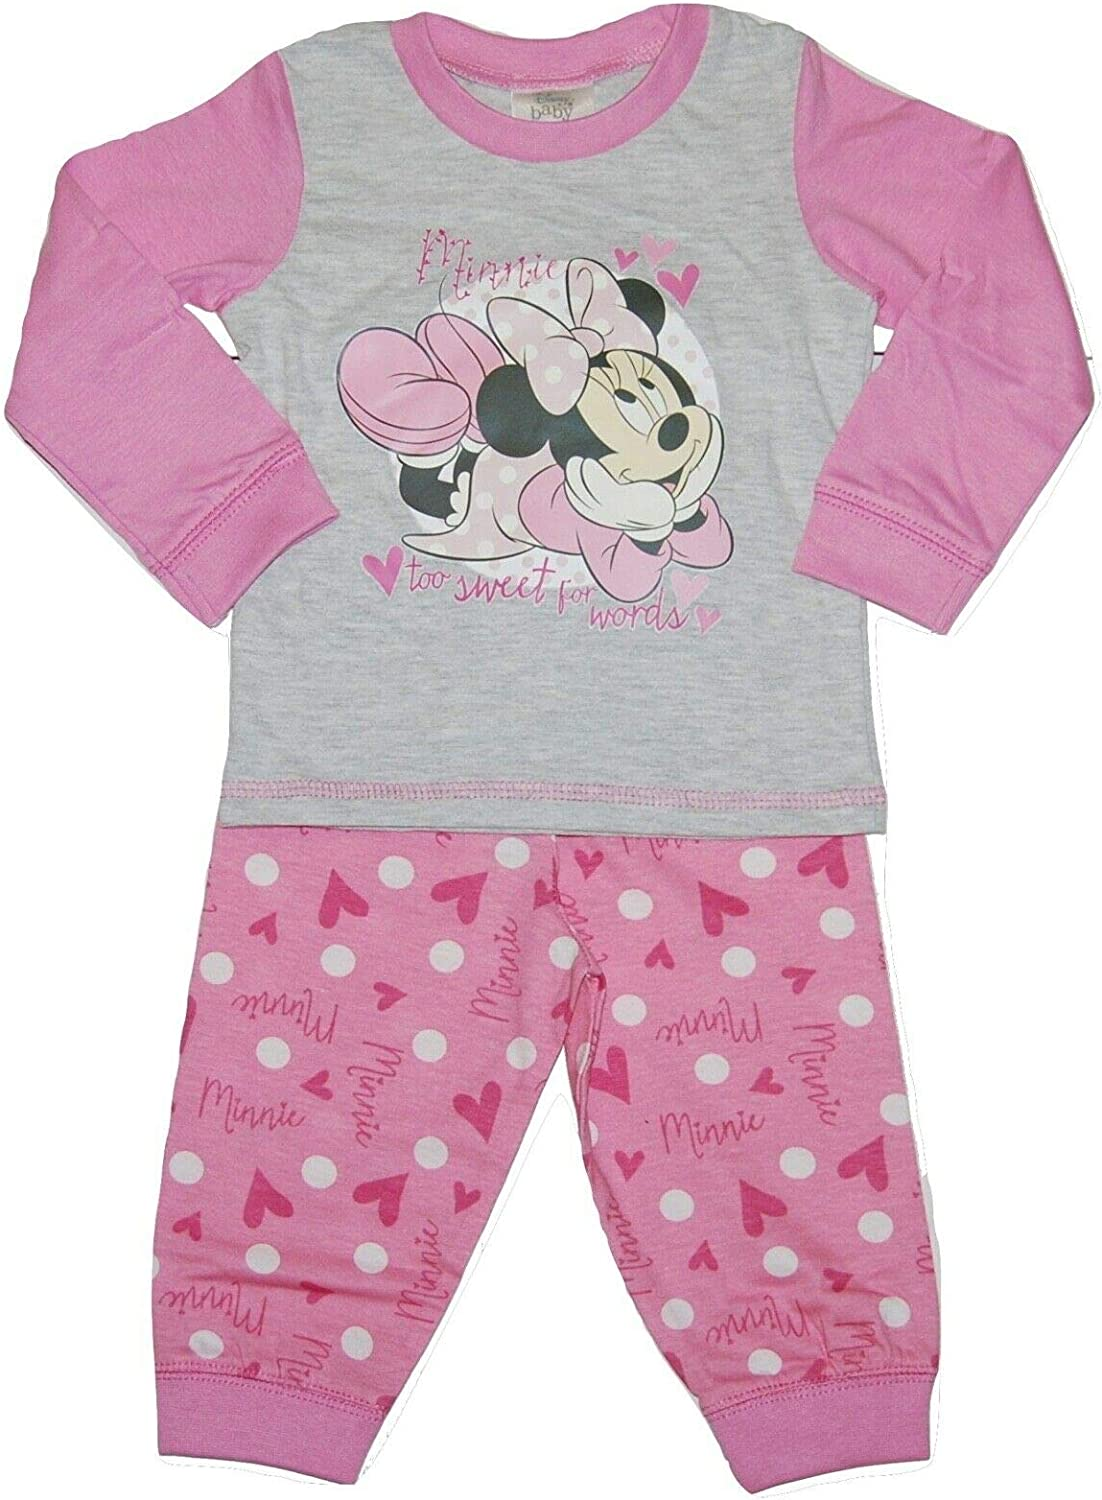 Baby Disney Minnie Mouse Pyjamas 6-24 Months